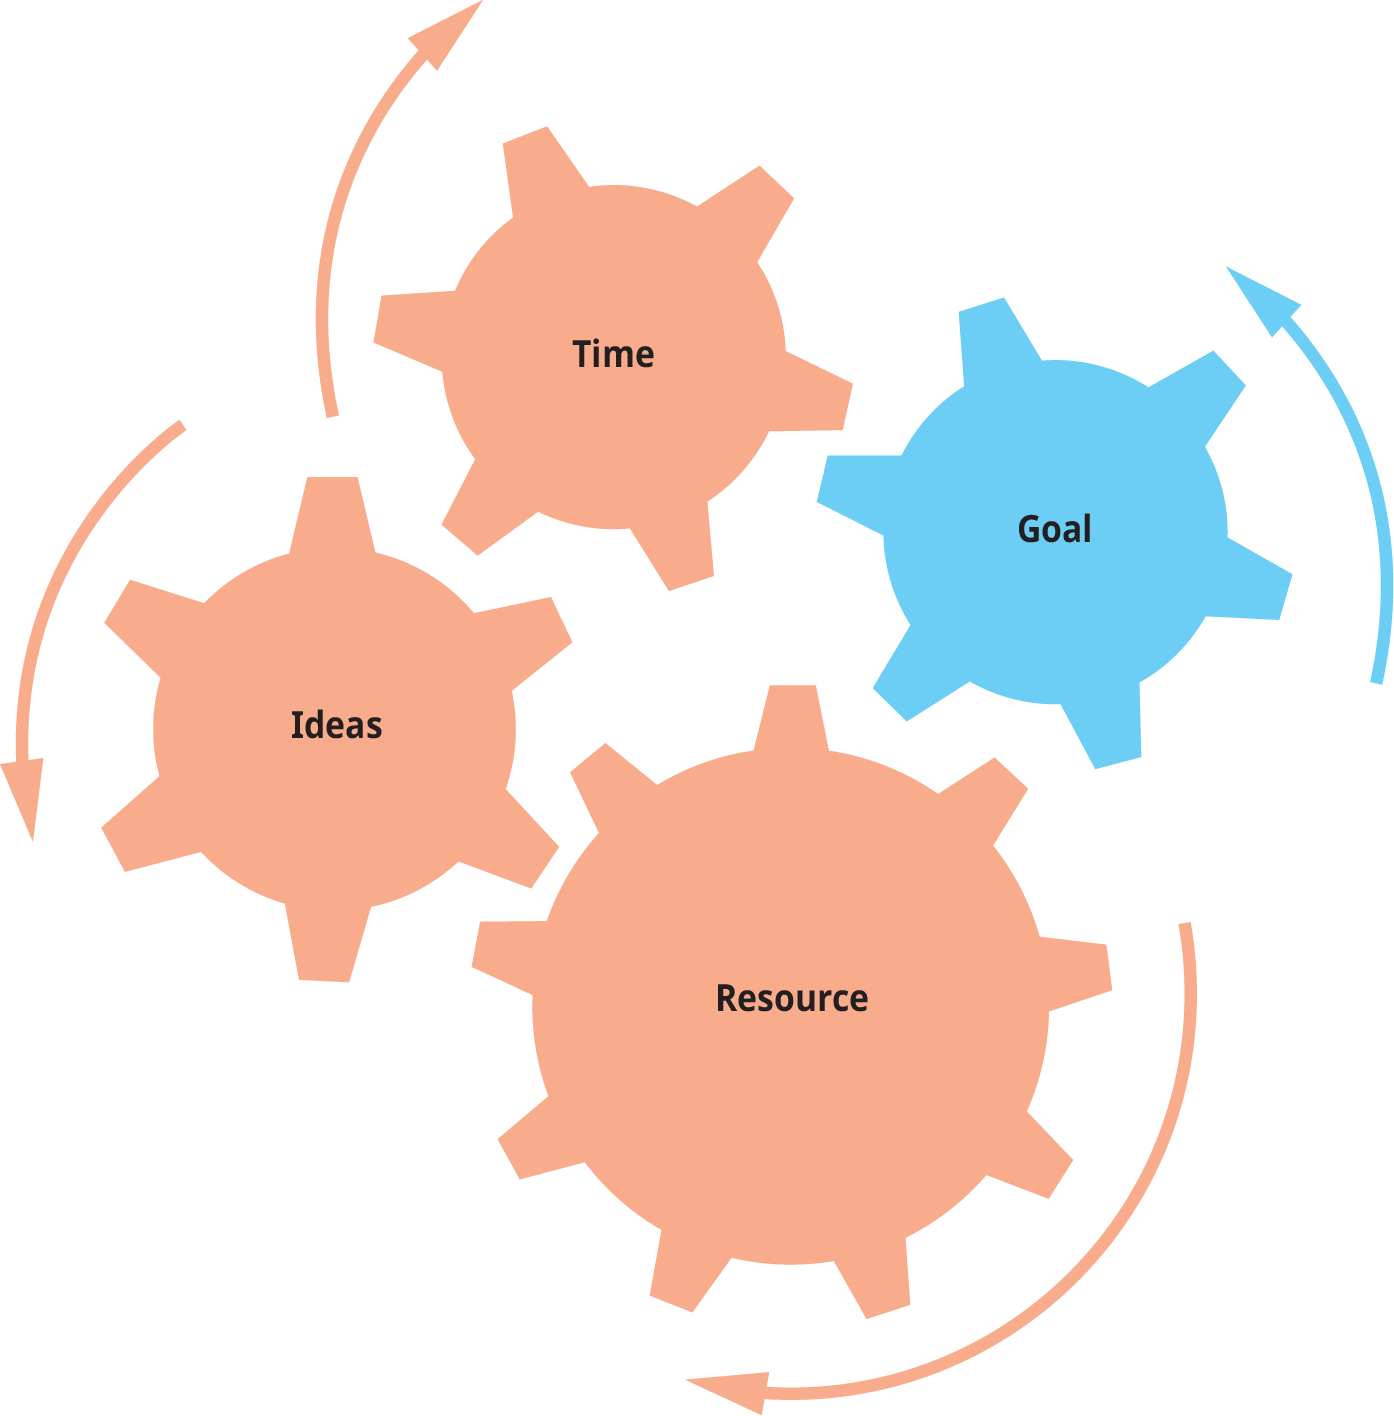 A diagram shows gear wheels working together to illustrate the coordination between different elements in effective planning.